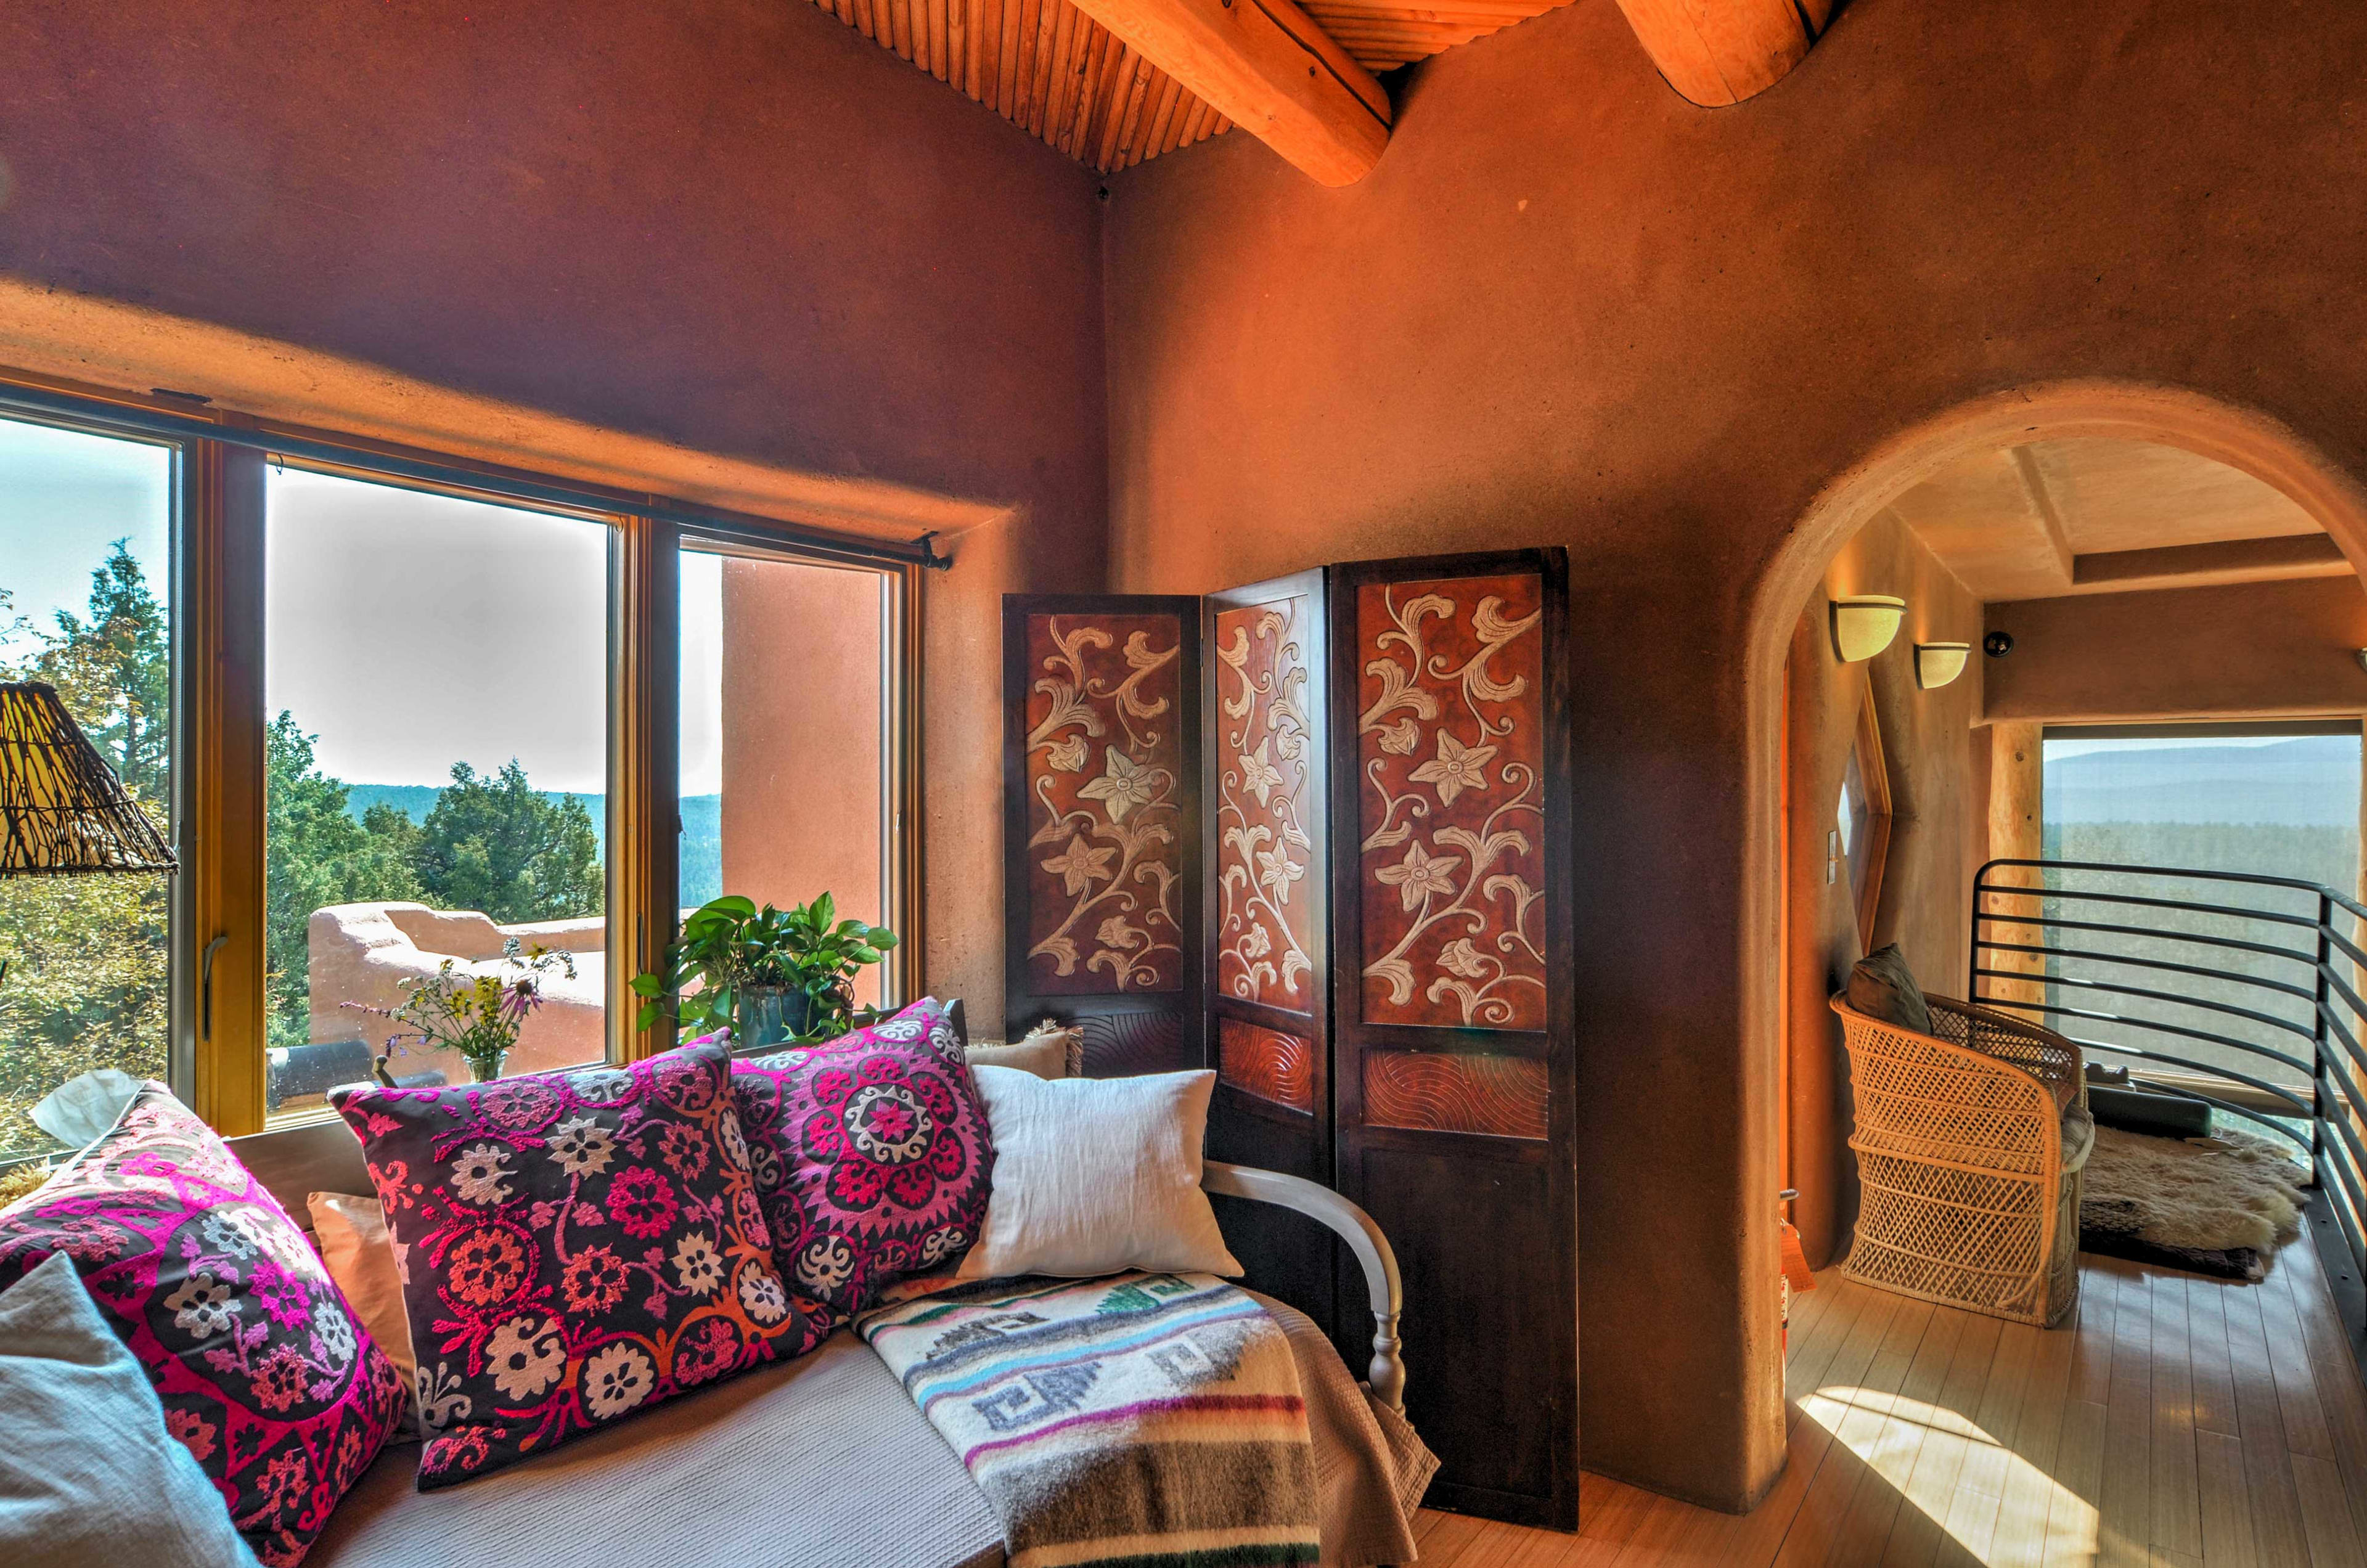 Outside of the Golden Eagle Suite is a lovely sleeping nook with a daybed.